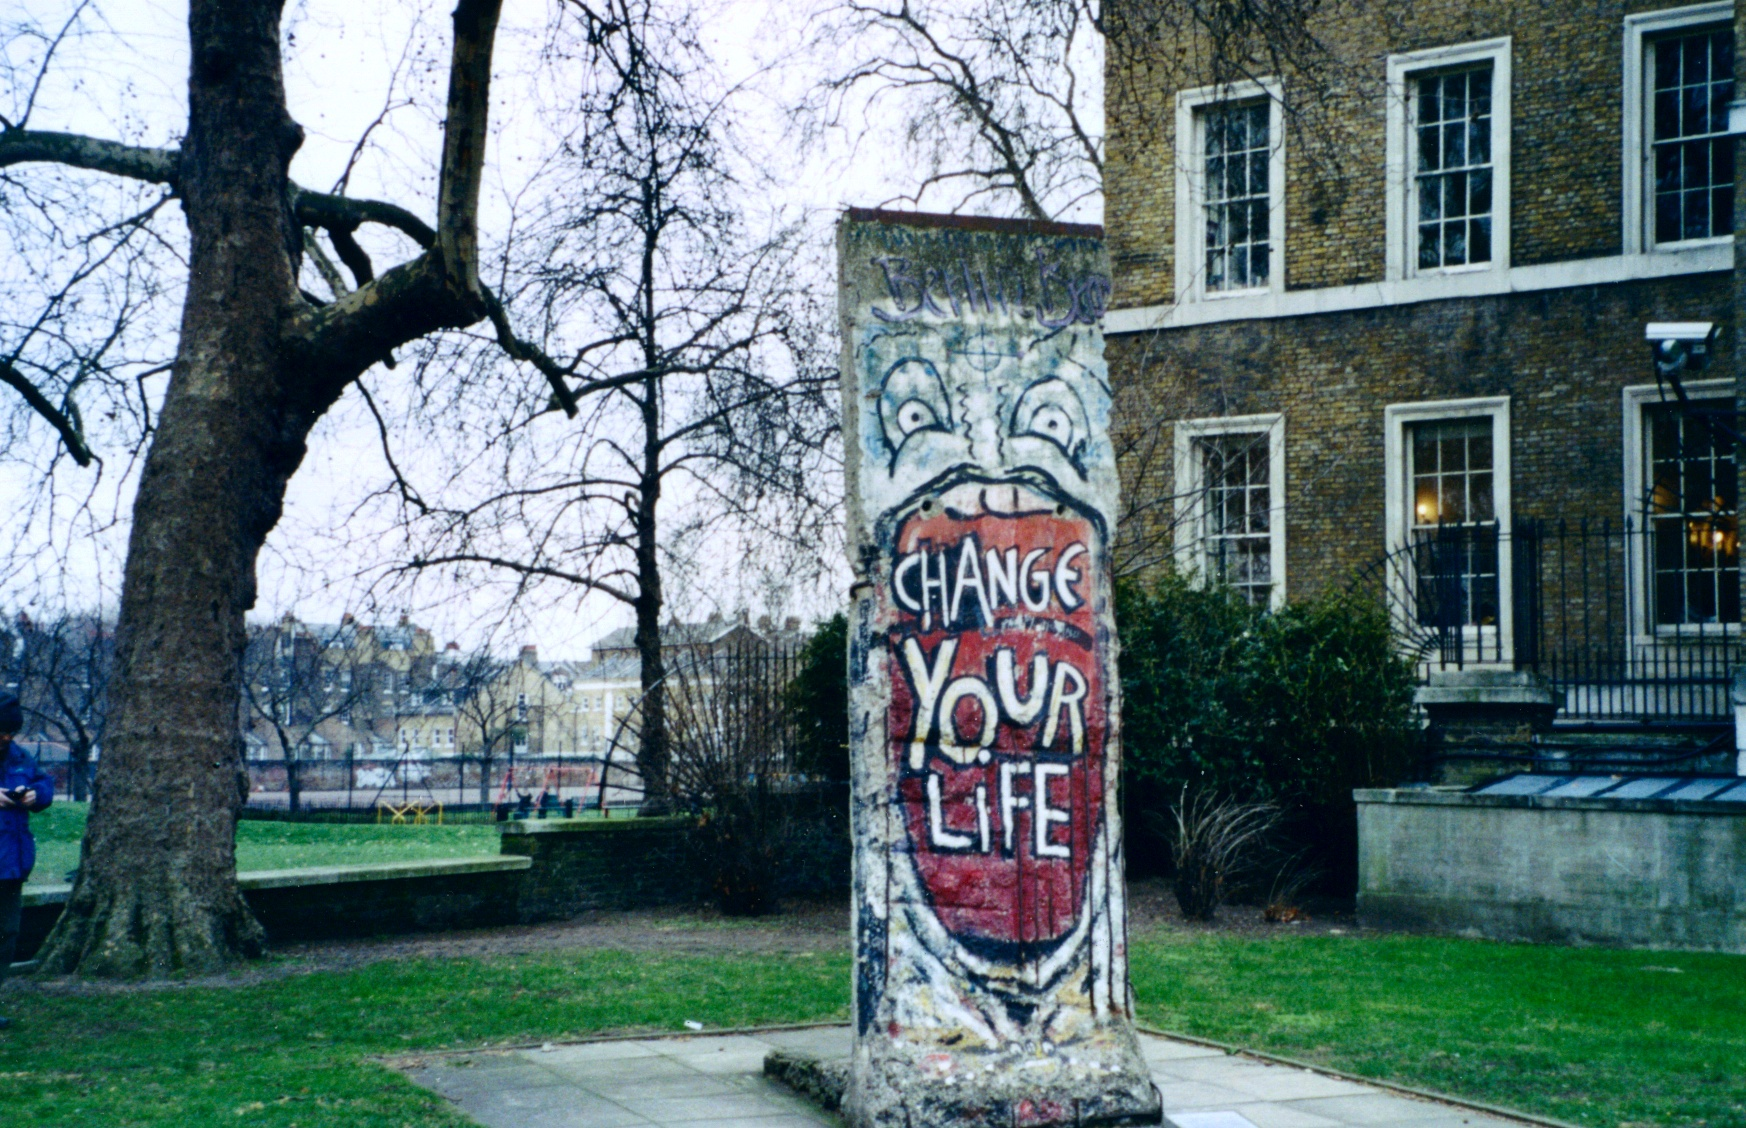 A fragment of the Berlin wall, at the Imperial War Museum, London. Photo by Redvers. Public domain via Wikimedia Commons.